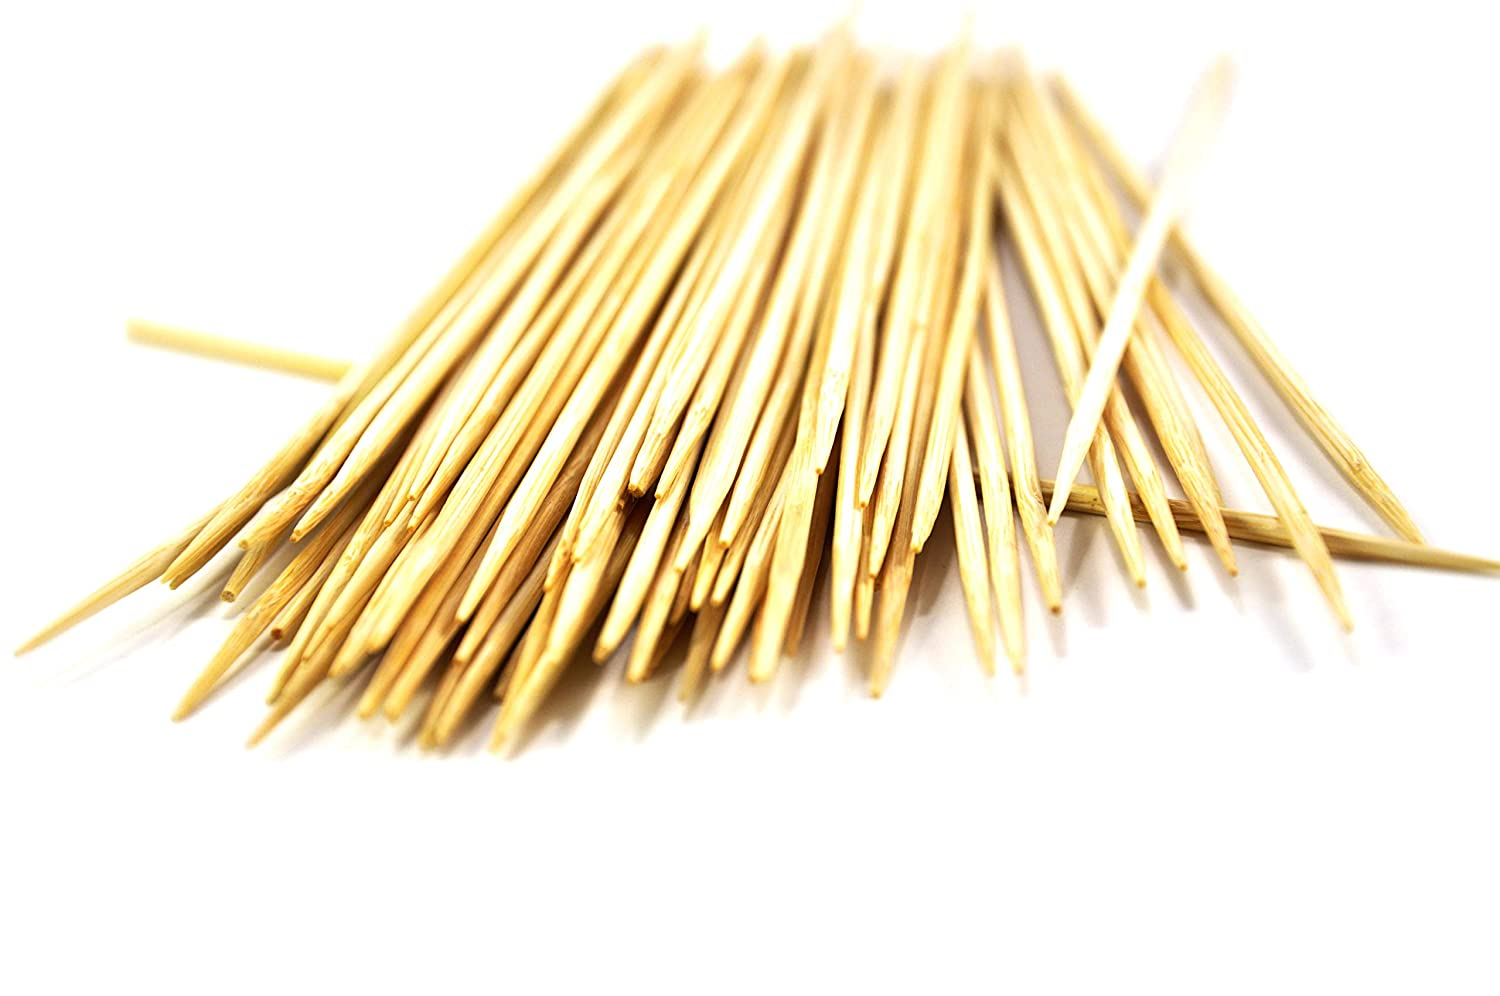 Bamboo marshmallow roasting sticks 100 pcs for serving appetizers cocktail parties hors doeuvres snacks fruit /& shish kabob starters meat skewers vegetables and crafts 10 inches 3 mm 103013